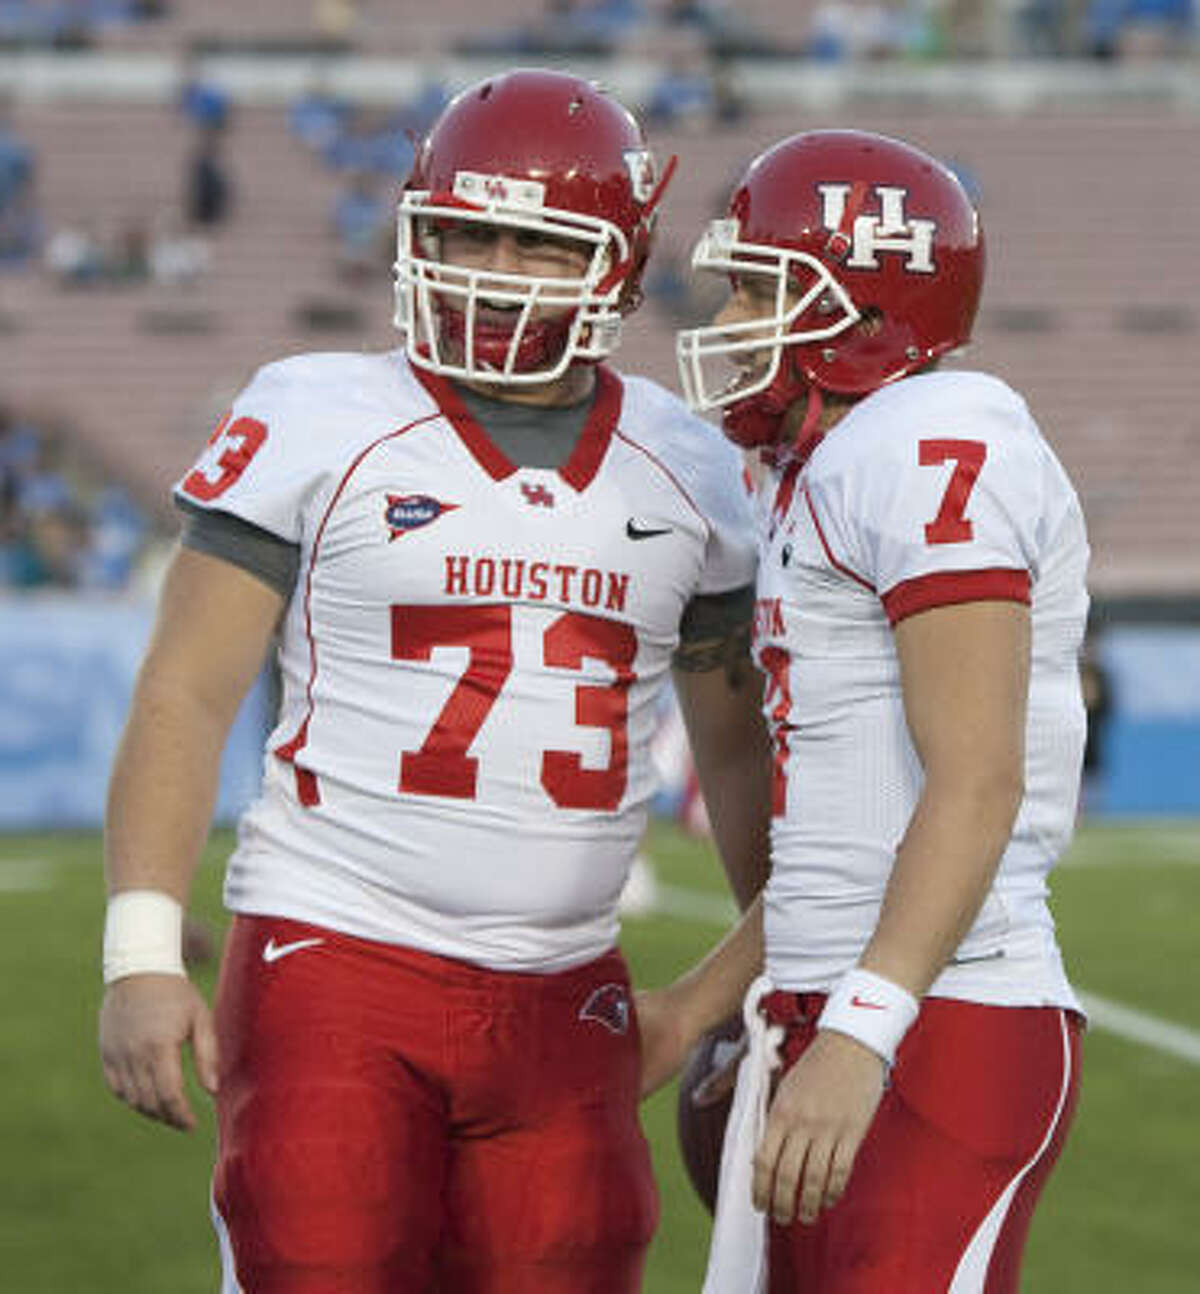 Houston offensive linesman Jordan Shoemaker (73) and Houston quarterback Case Keenum (7) talk as they warm up for the game.